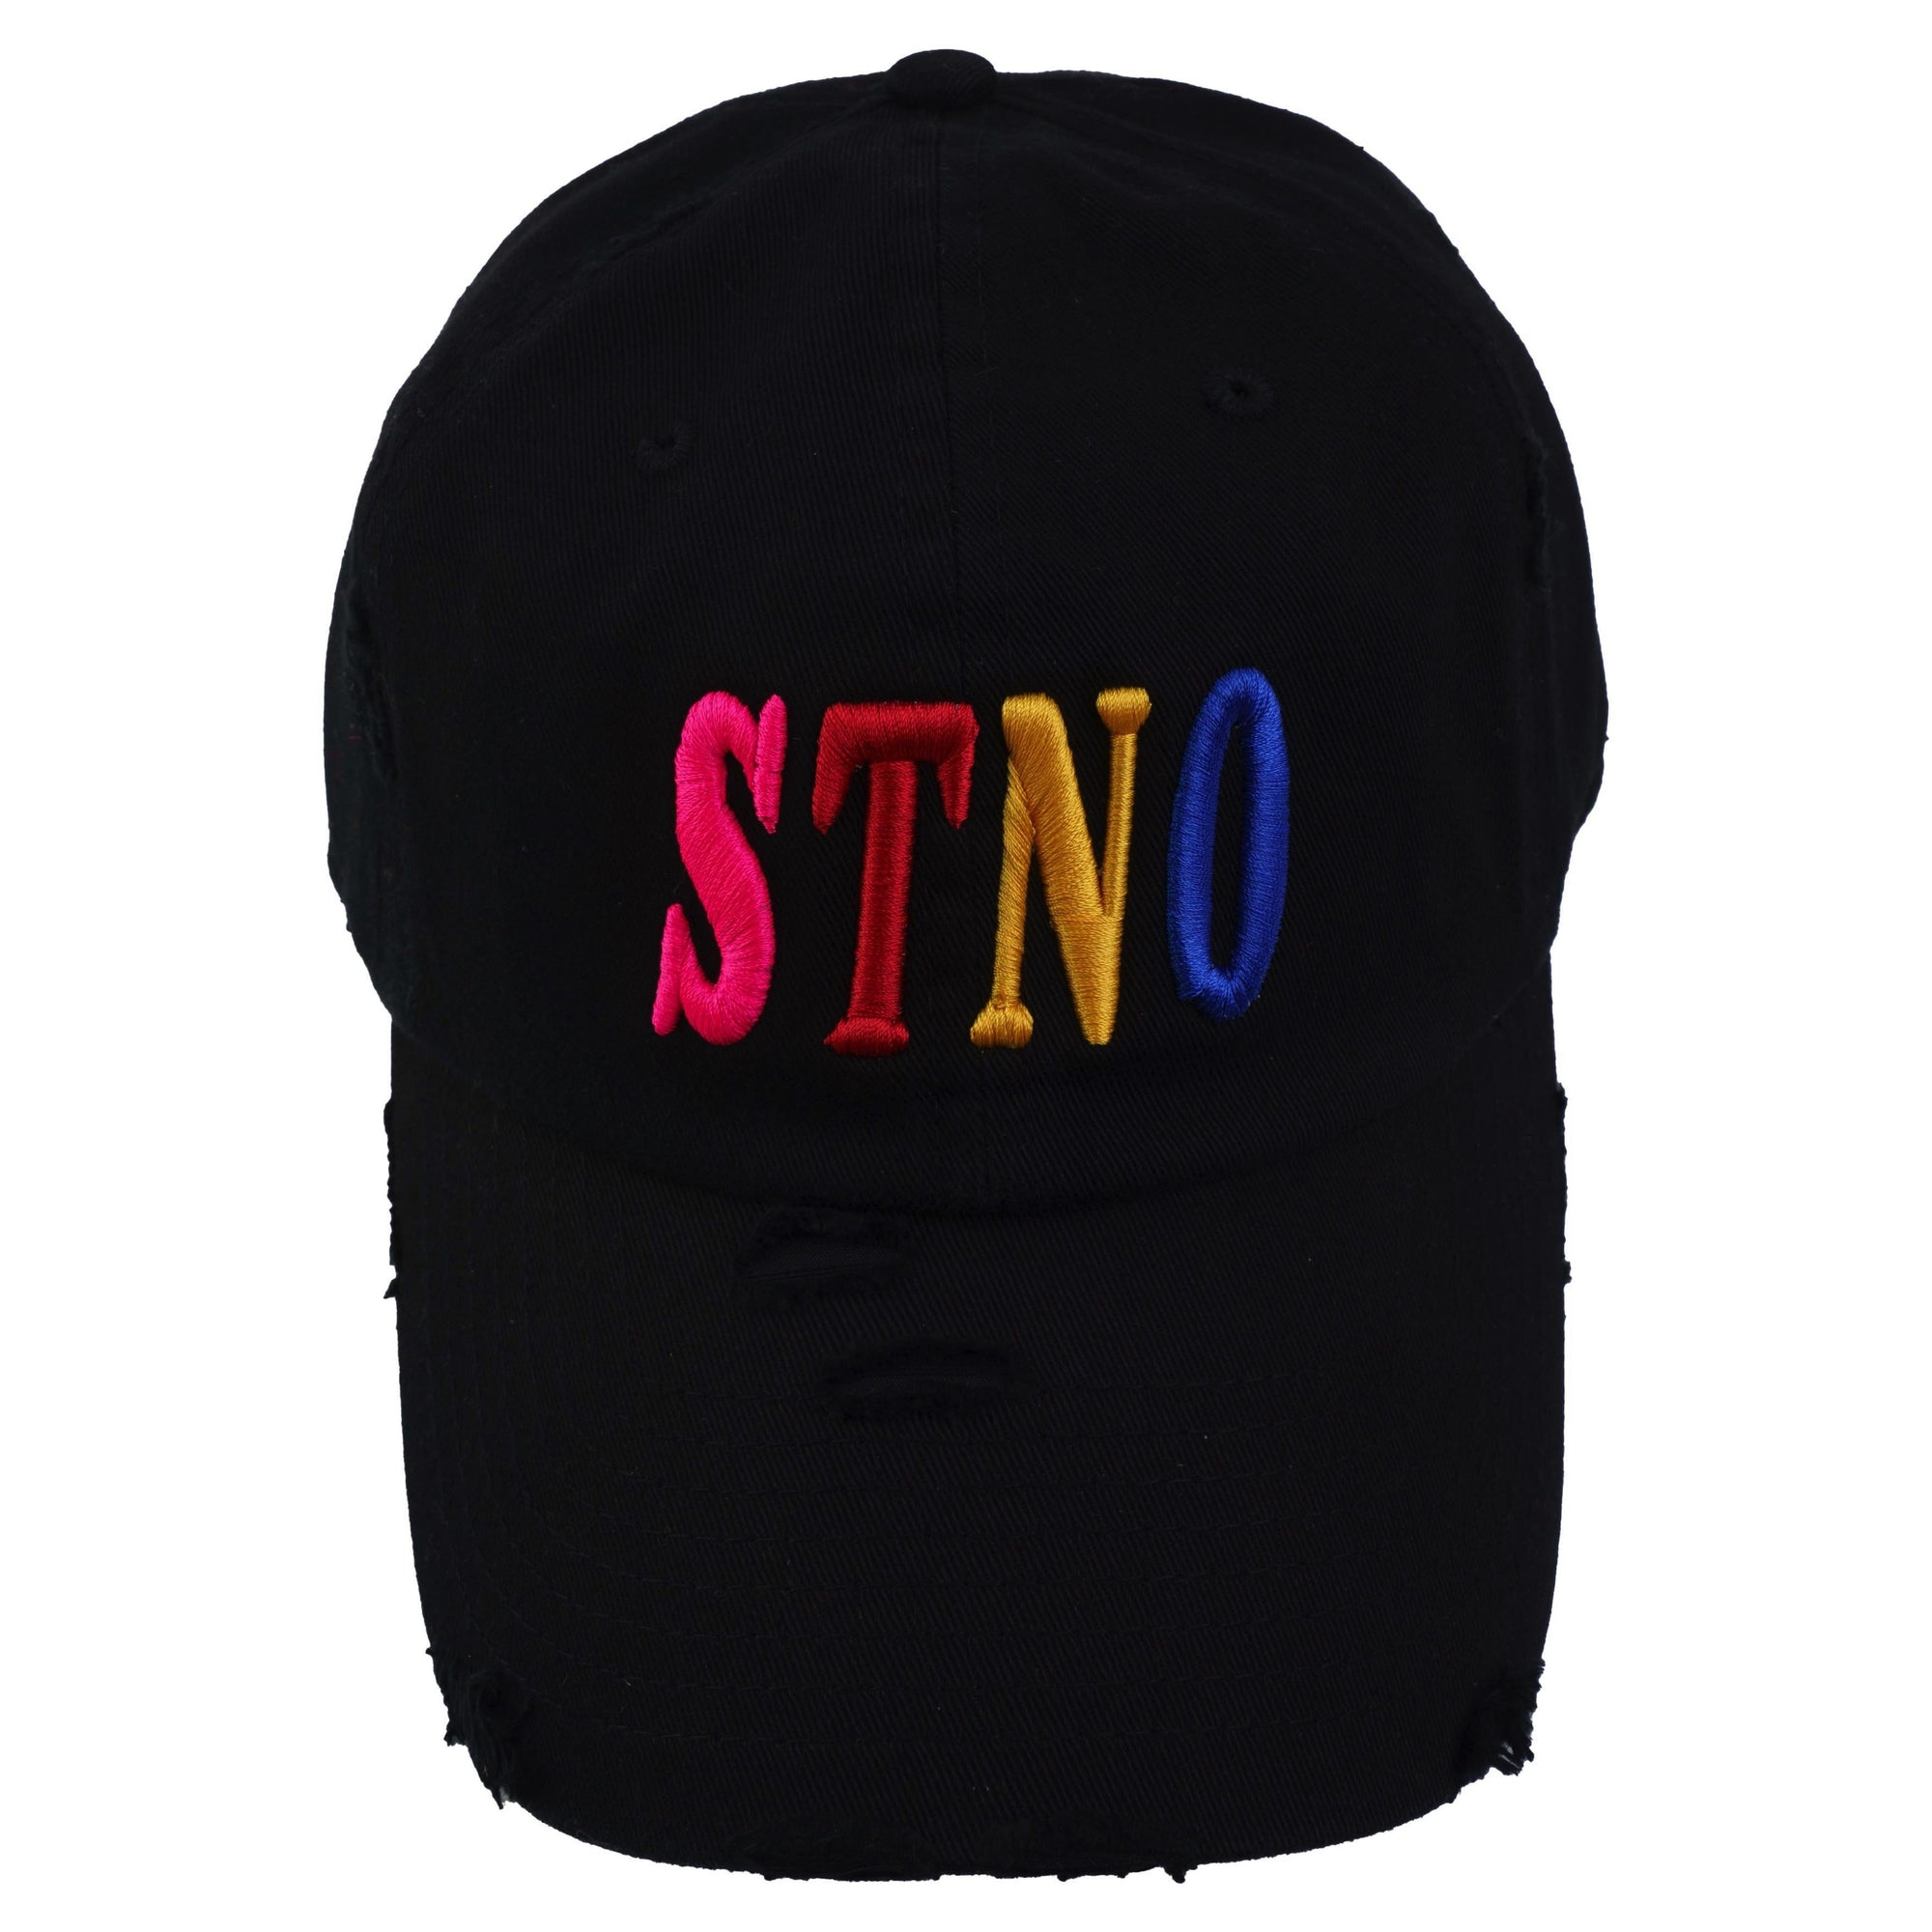 3D Puff Distressed Dad Hat